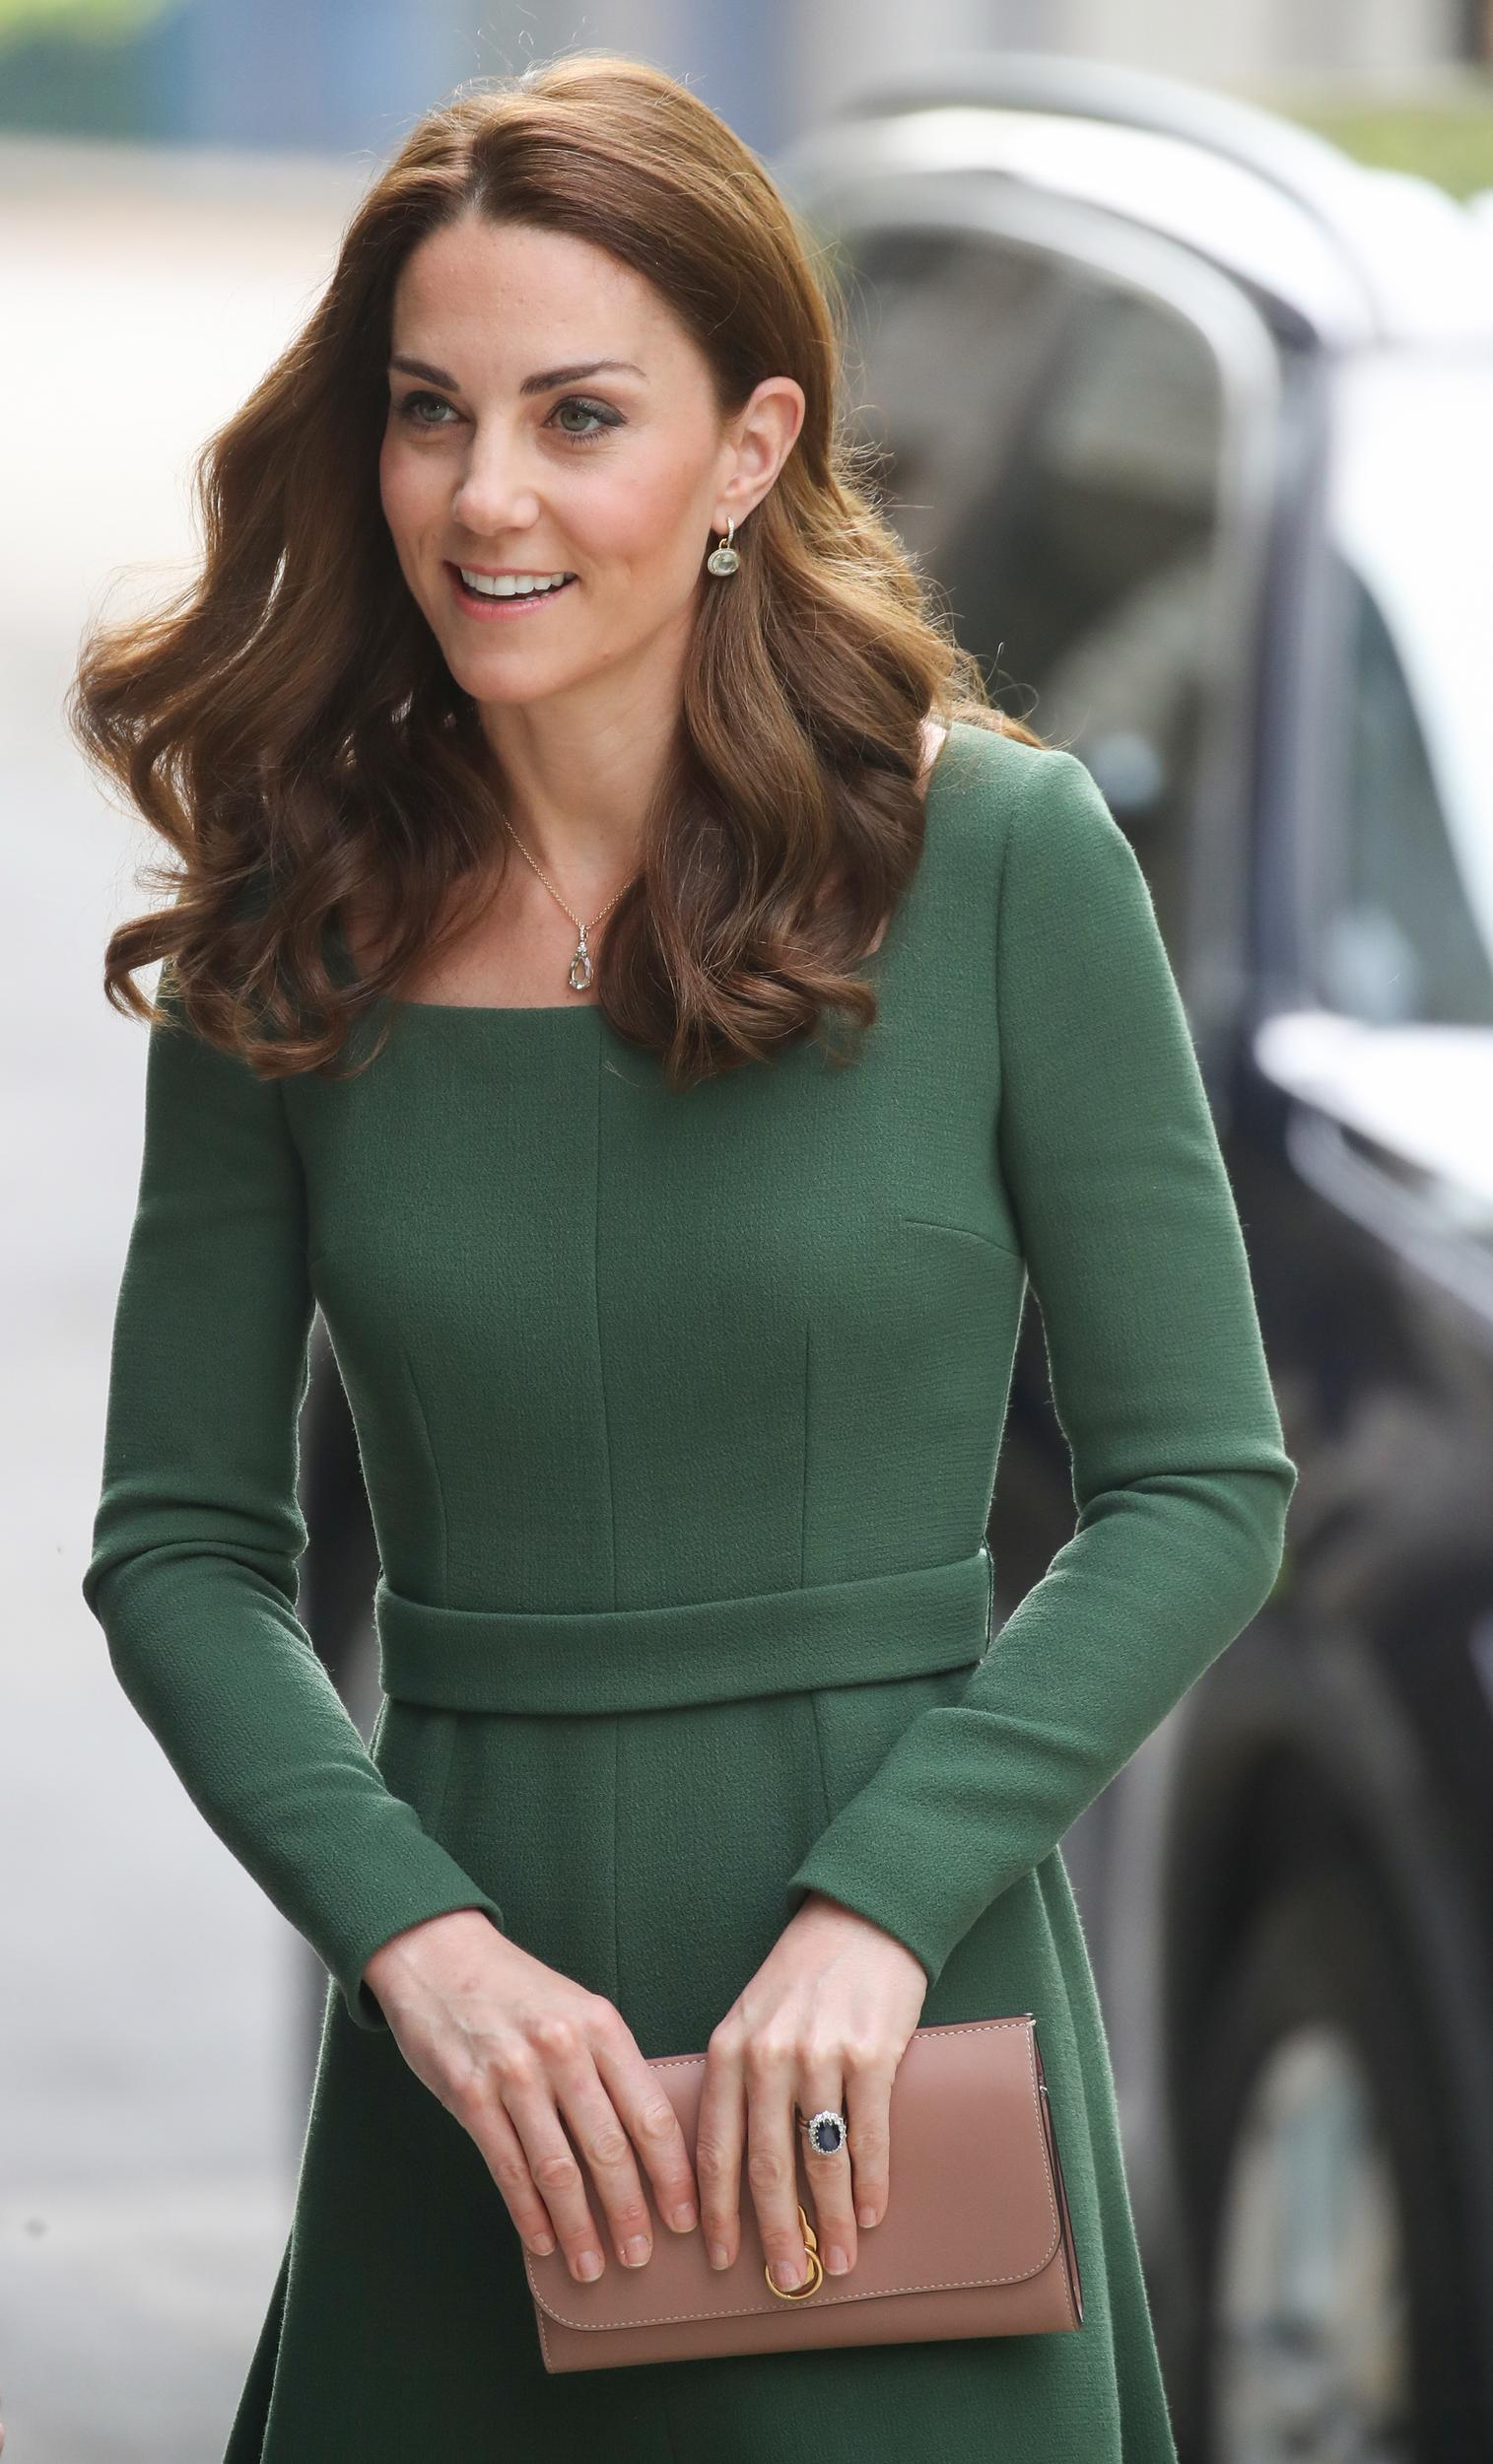 LONDON, ENGLAND - MAY 01: Catherine, Duchess of Cambridge arrives to officially open the new Centre of Excellence at Anna Freud Centre on May 01, 2019 in London, England. The Duchess of Cambridge is Patron of the Anna Freud National Centre for Children and Families.  (Photo by Chris Jackson/Getty Images)